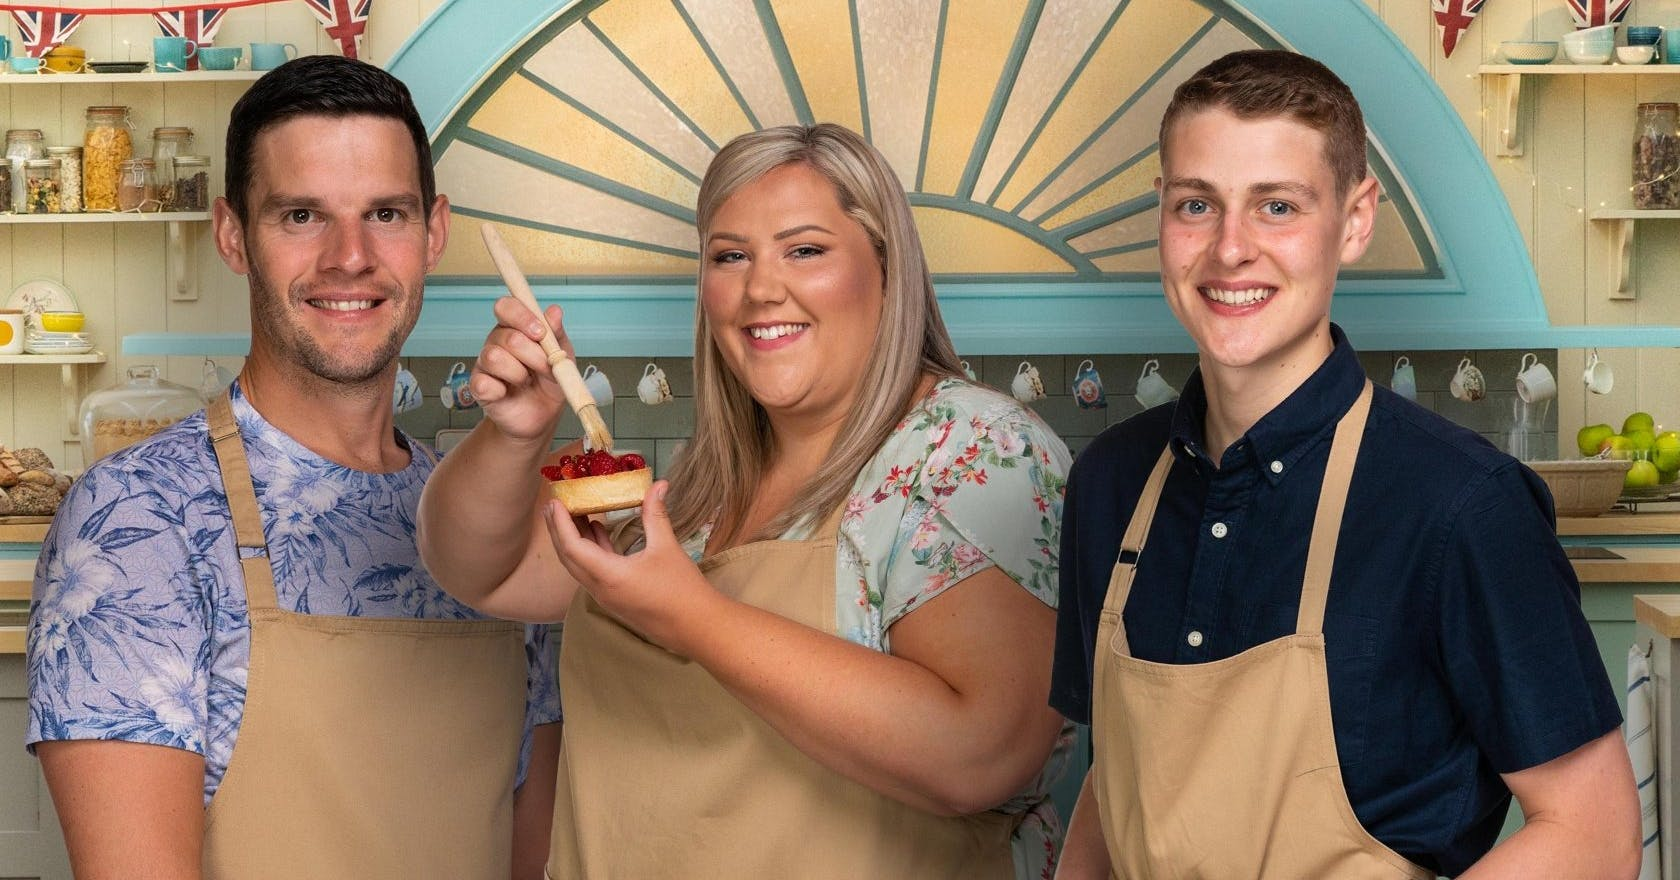 GBBO: the Bake Off winner has been crowned, here's what I learnt from the final